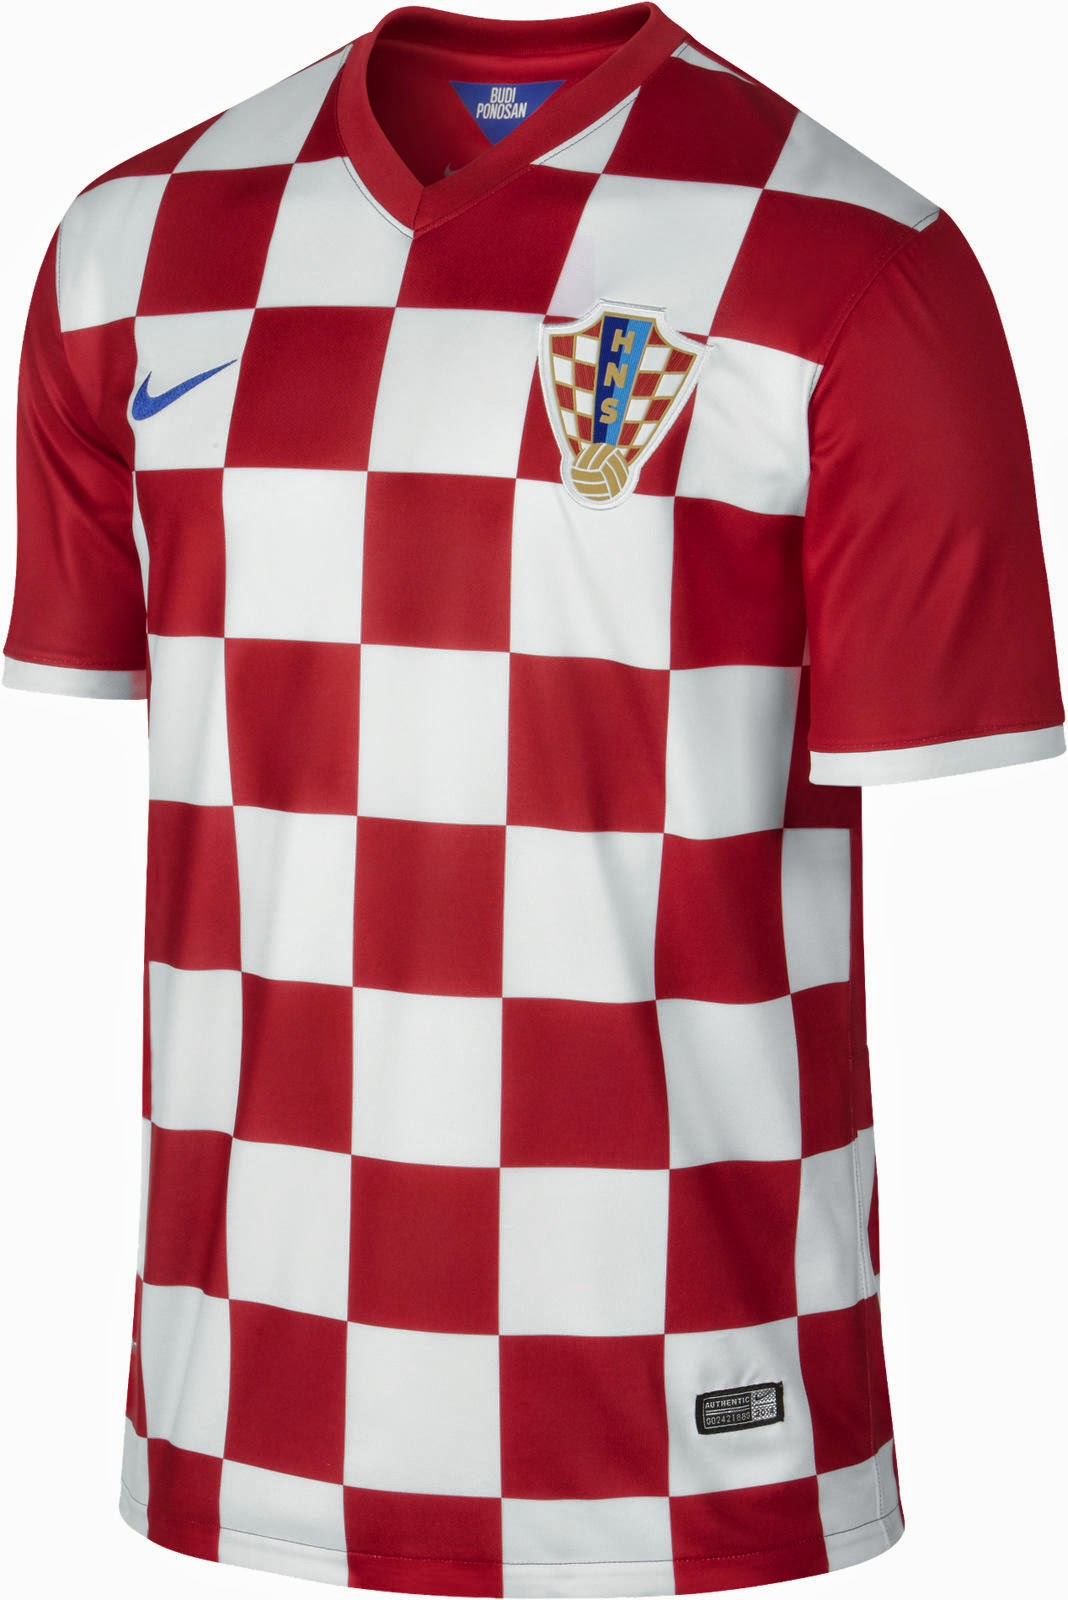 9cb7112cd0b Nico Krancjar is the biggest name missing in the Croatia final World Cup  Squad list as the midfielder was recovering from a leg injury suffered in  the ...